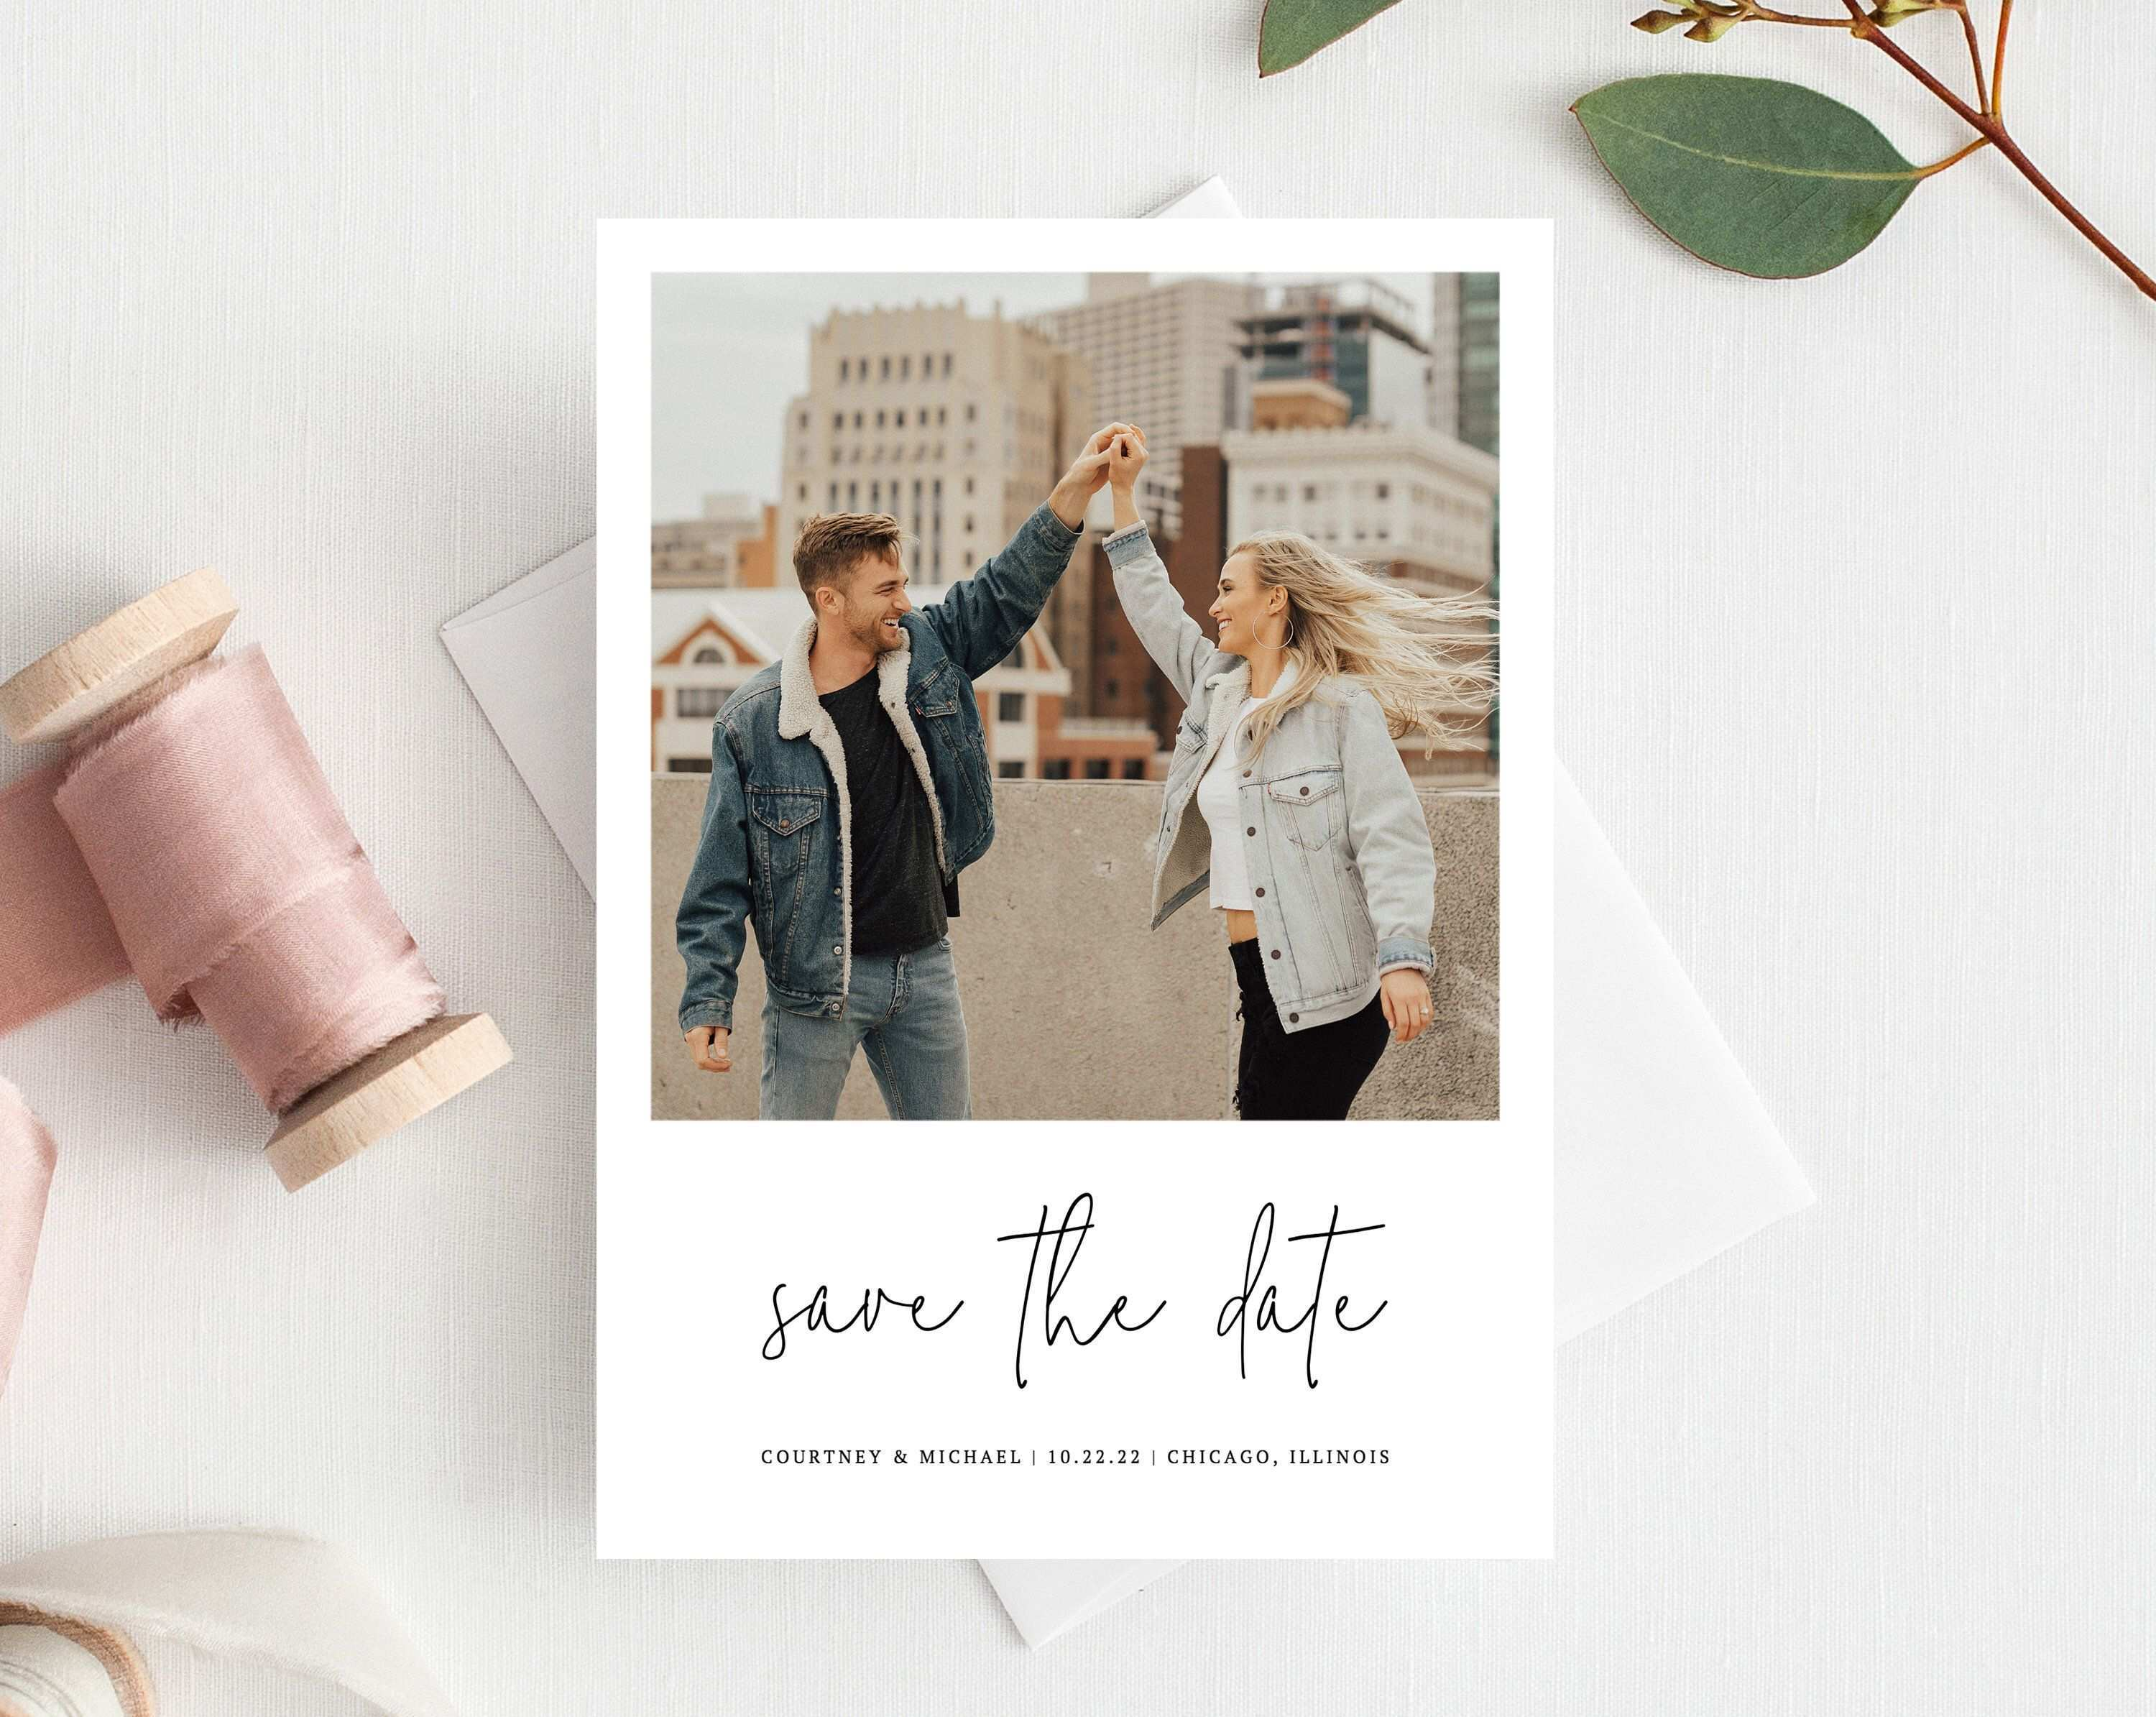 Polaroid Save The Date Save The Date With Pictures Template Printable Save The Date Card Wedding Invitations With Pictures Wedding Saving Save The Date Cards